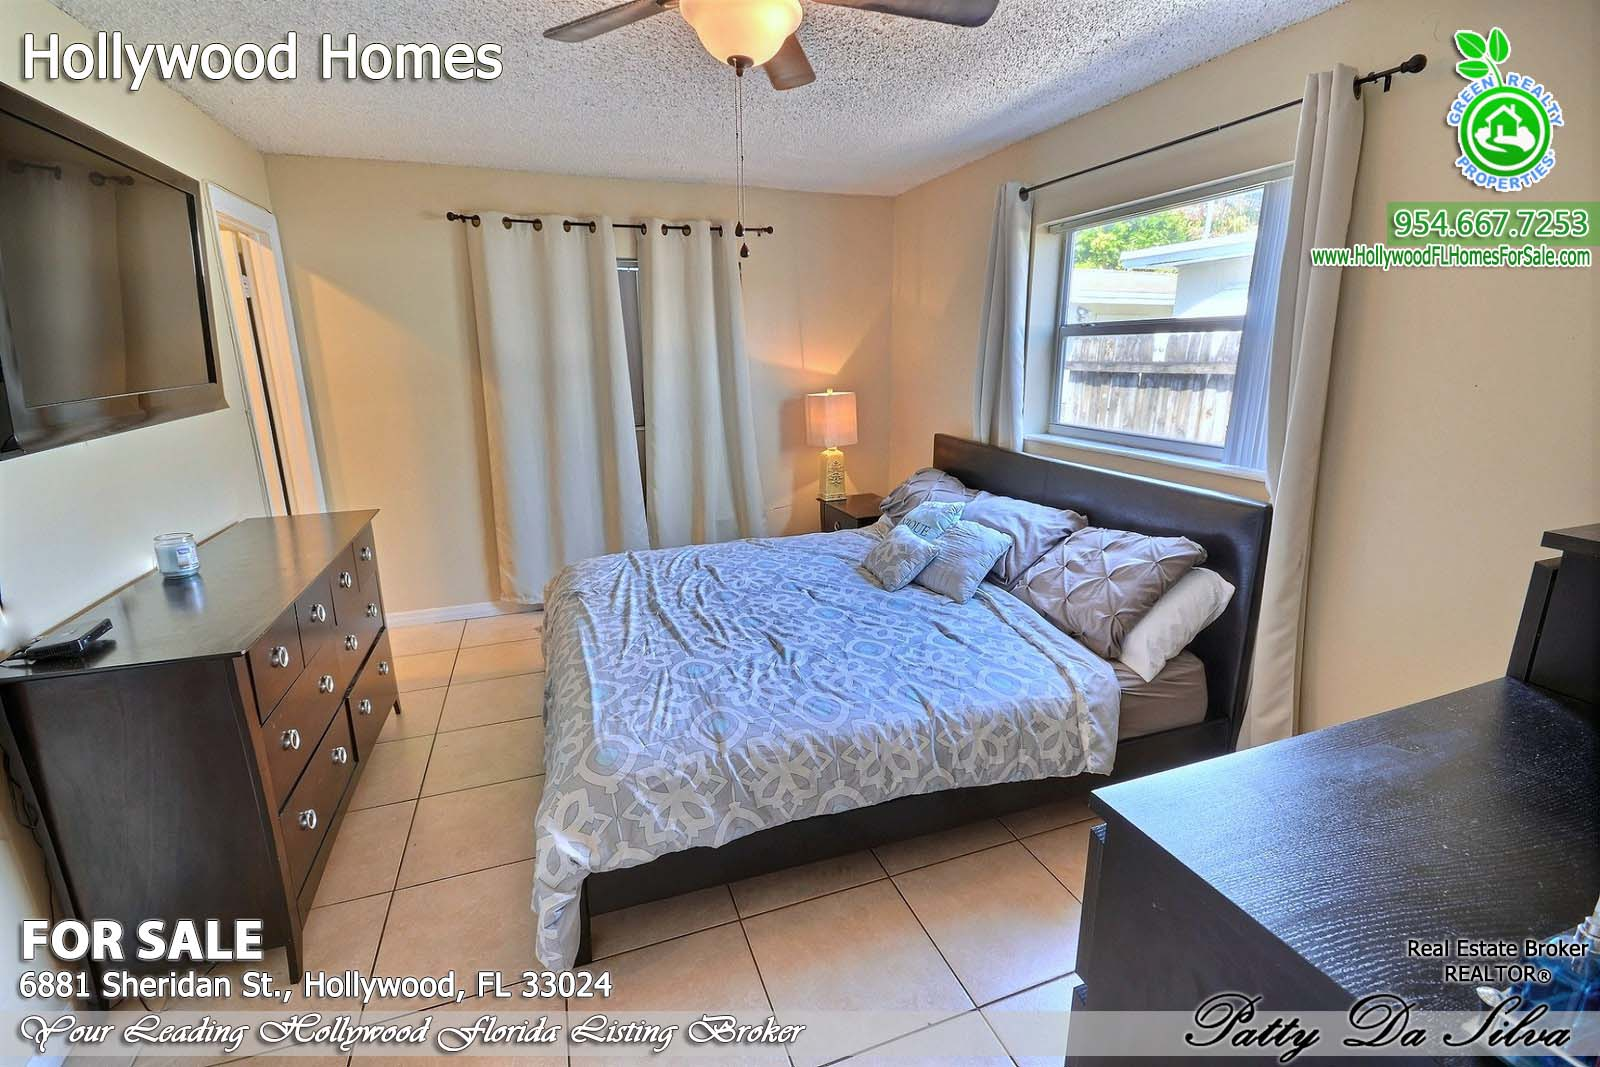 Hollywood FL Homes For Sale (32)